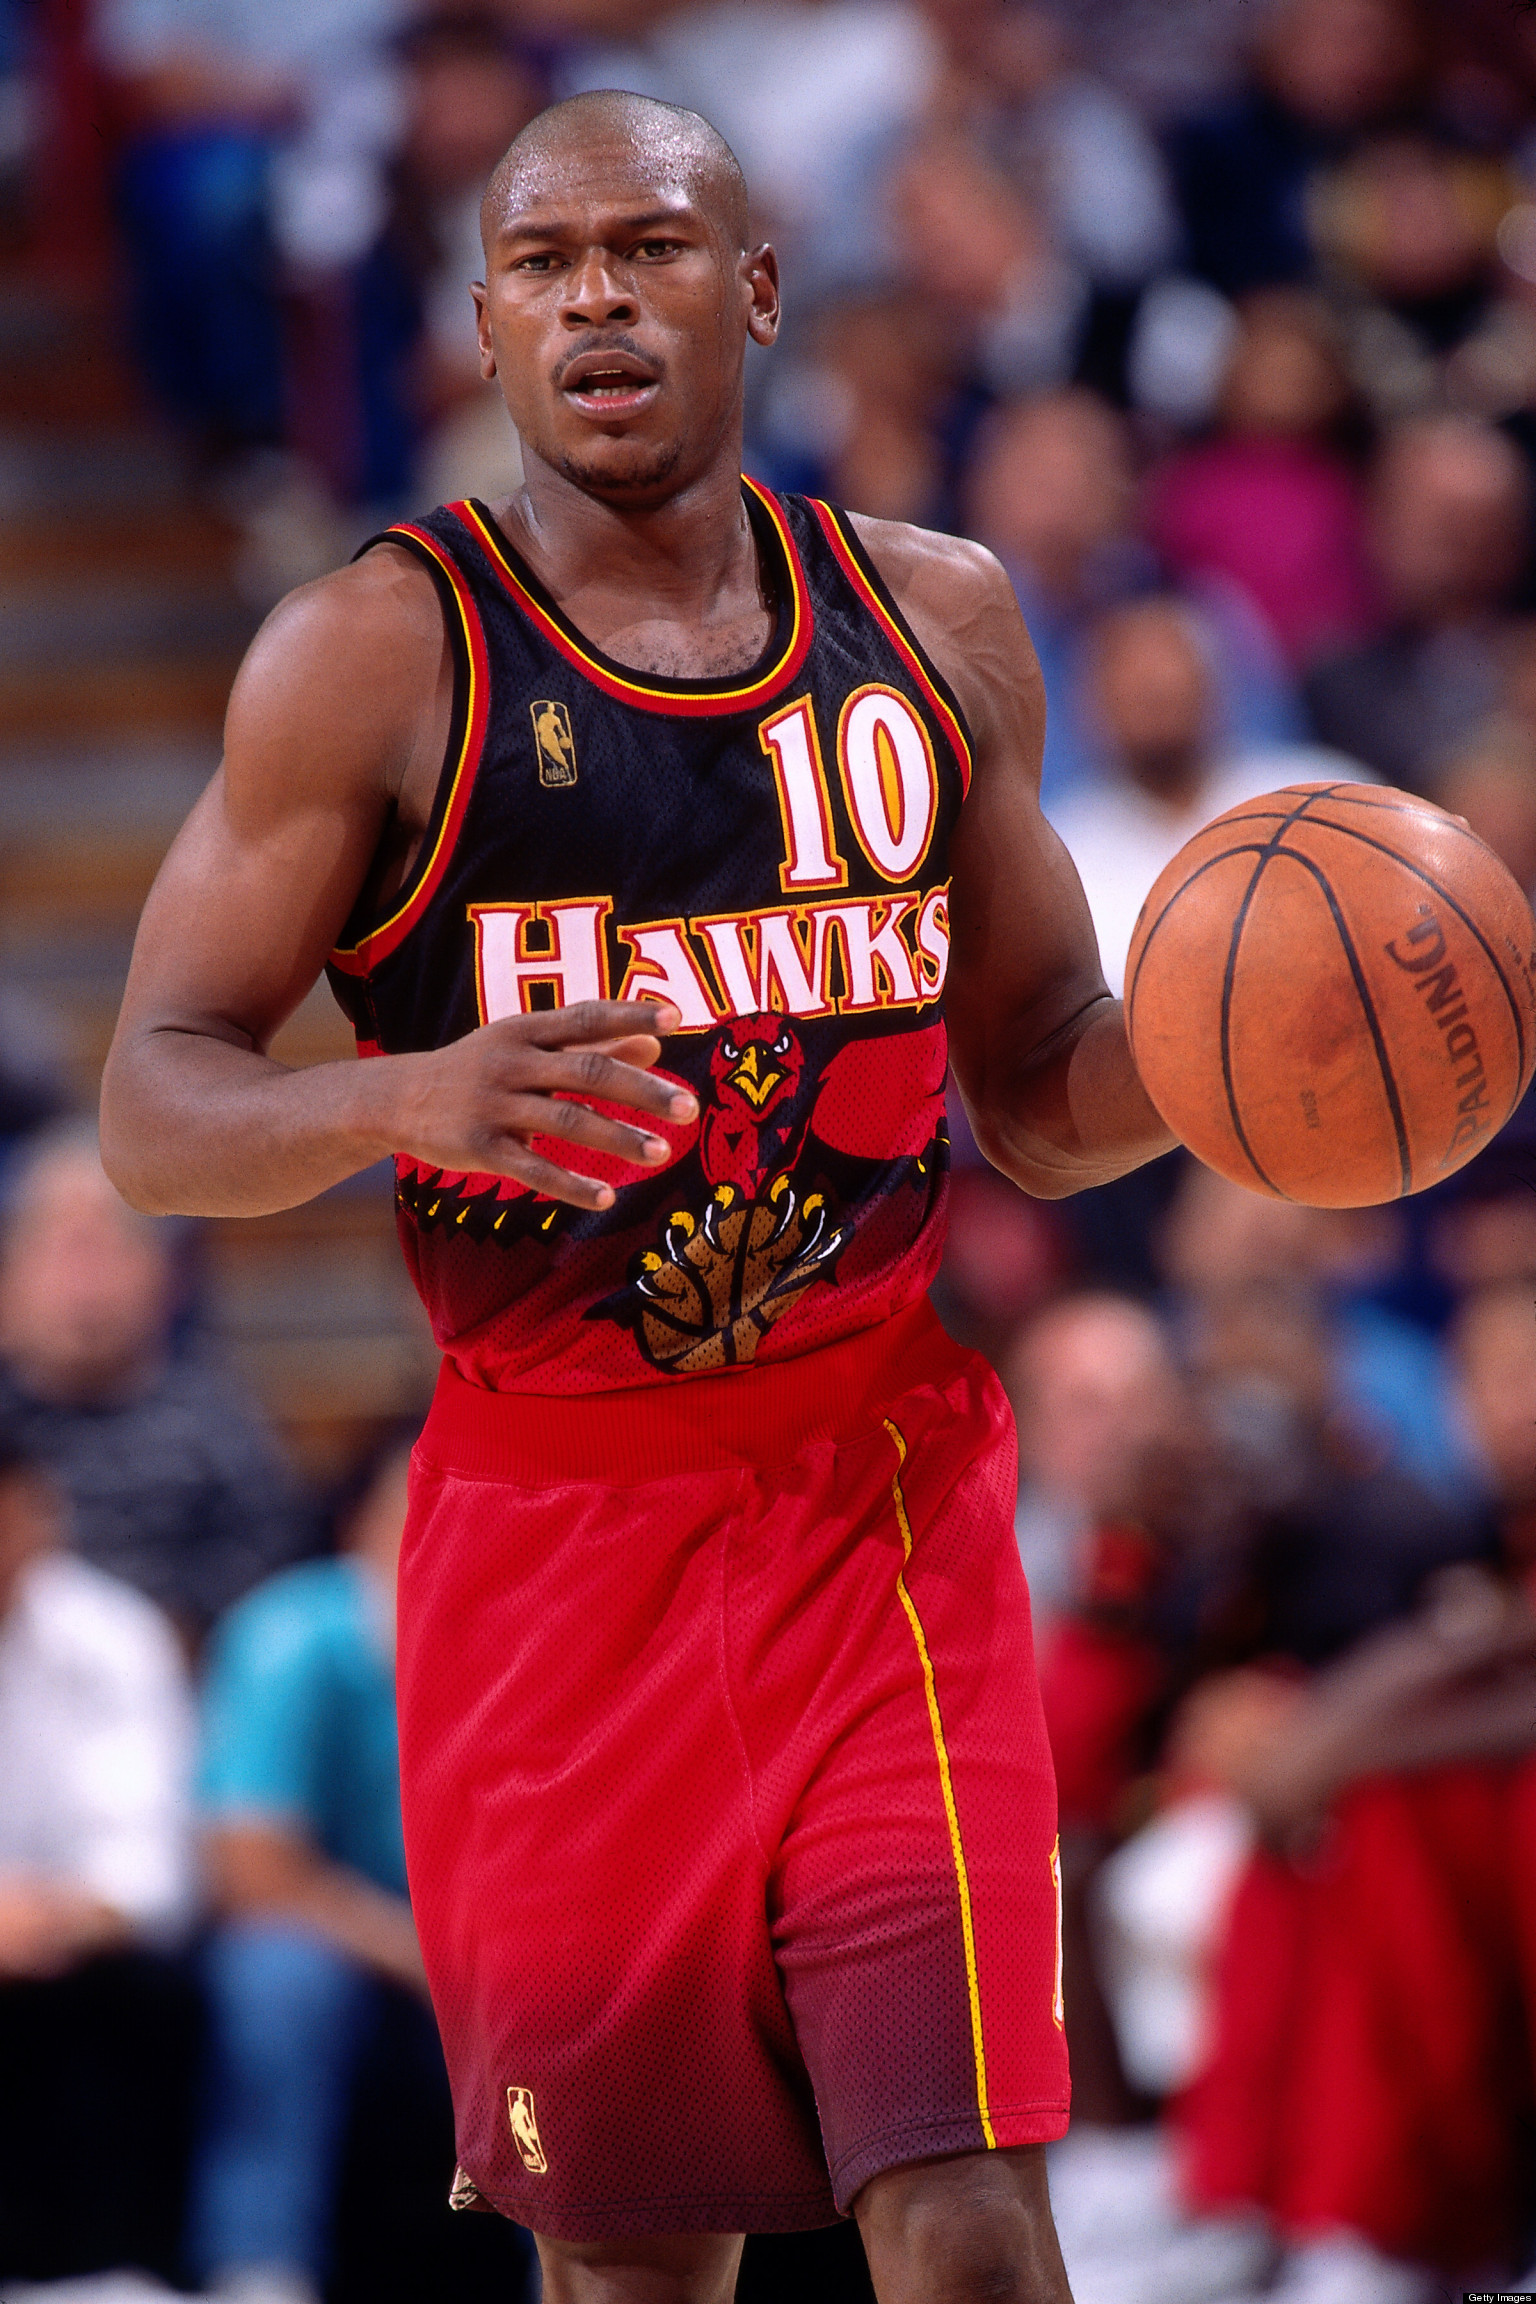 mookie blaylock on life support after car crash police